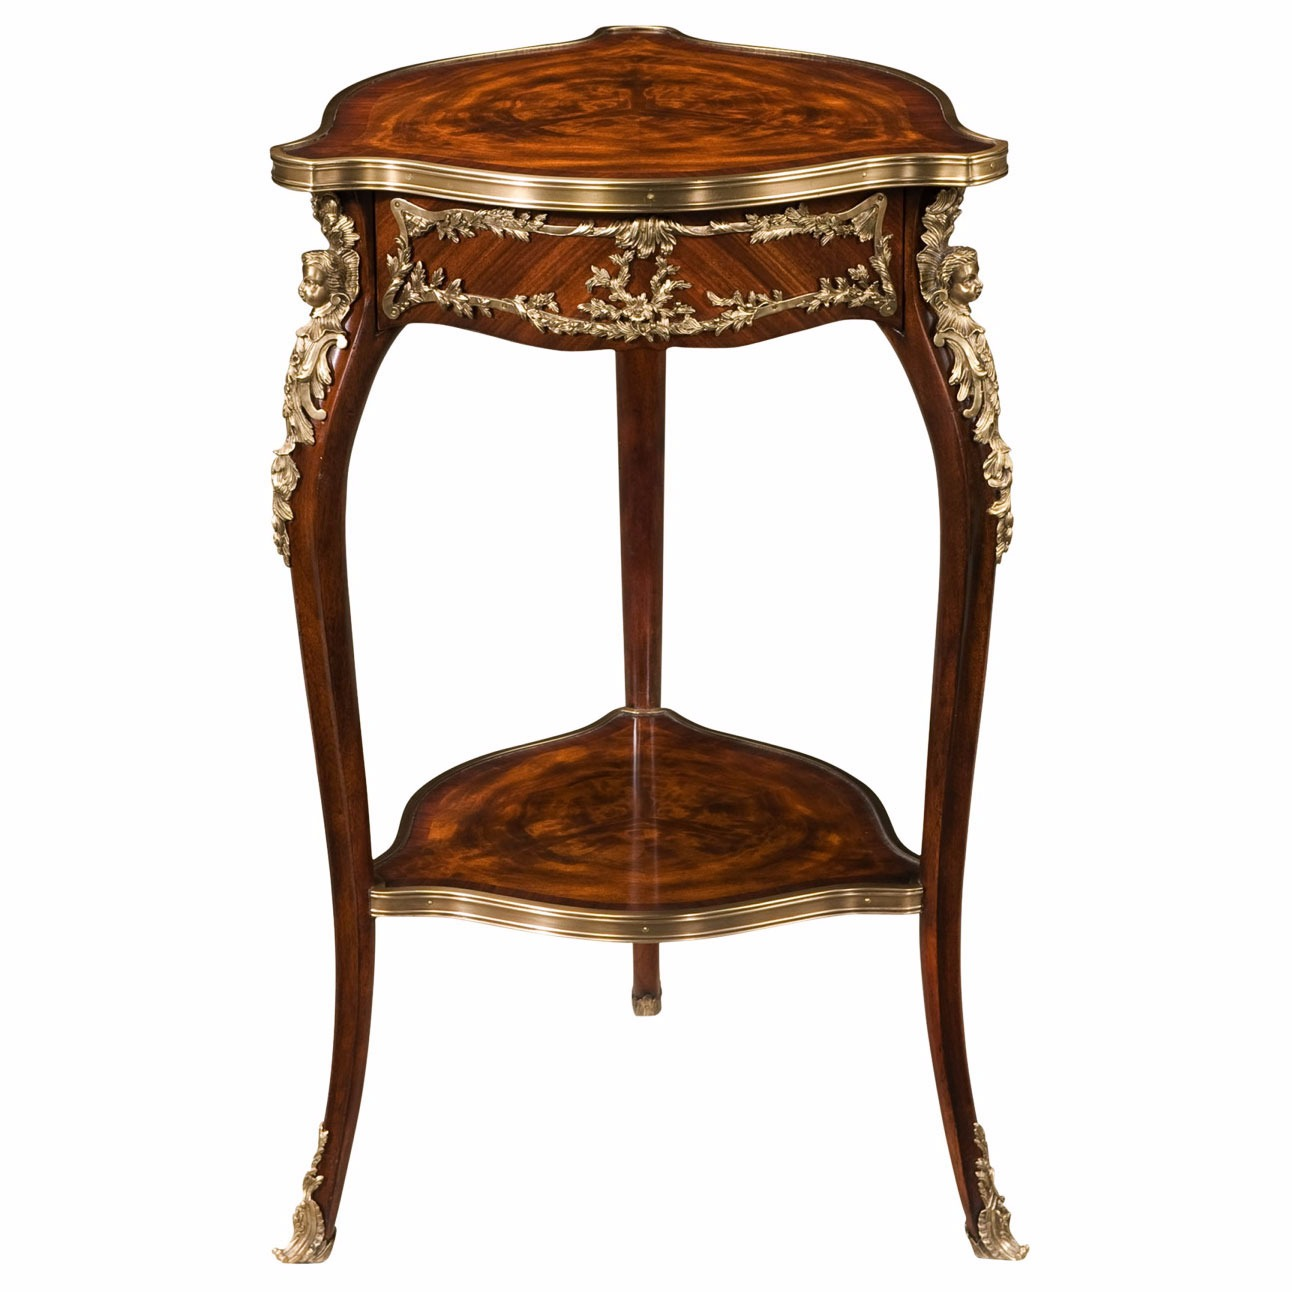 Louis XV style mahogany and ormolu occasional table